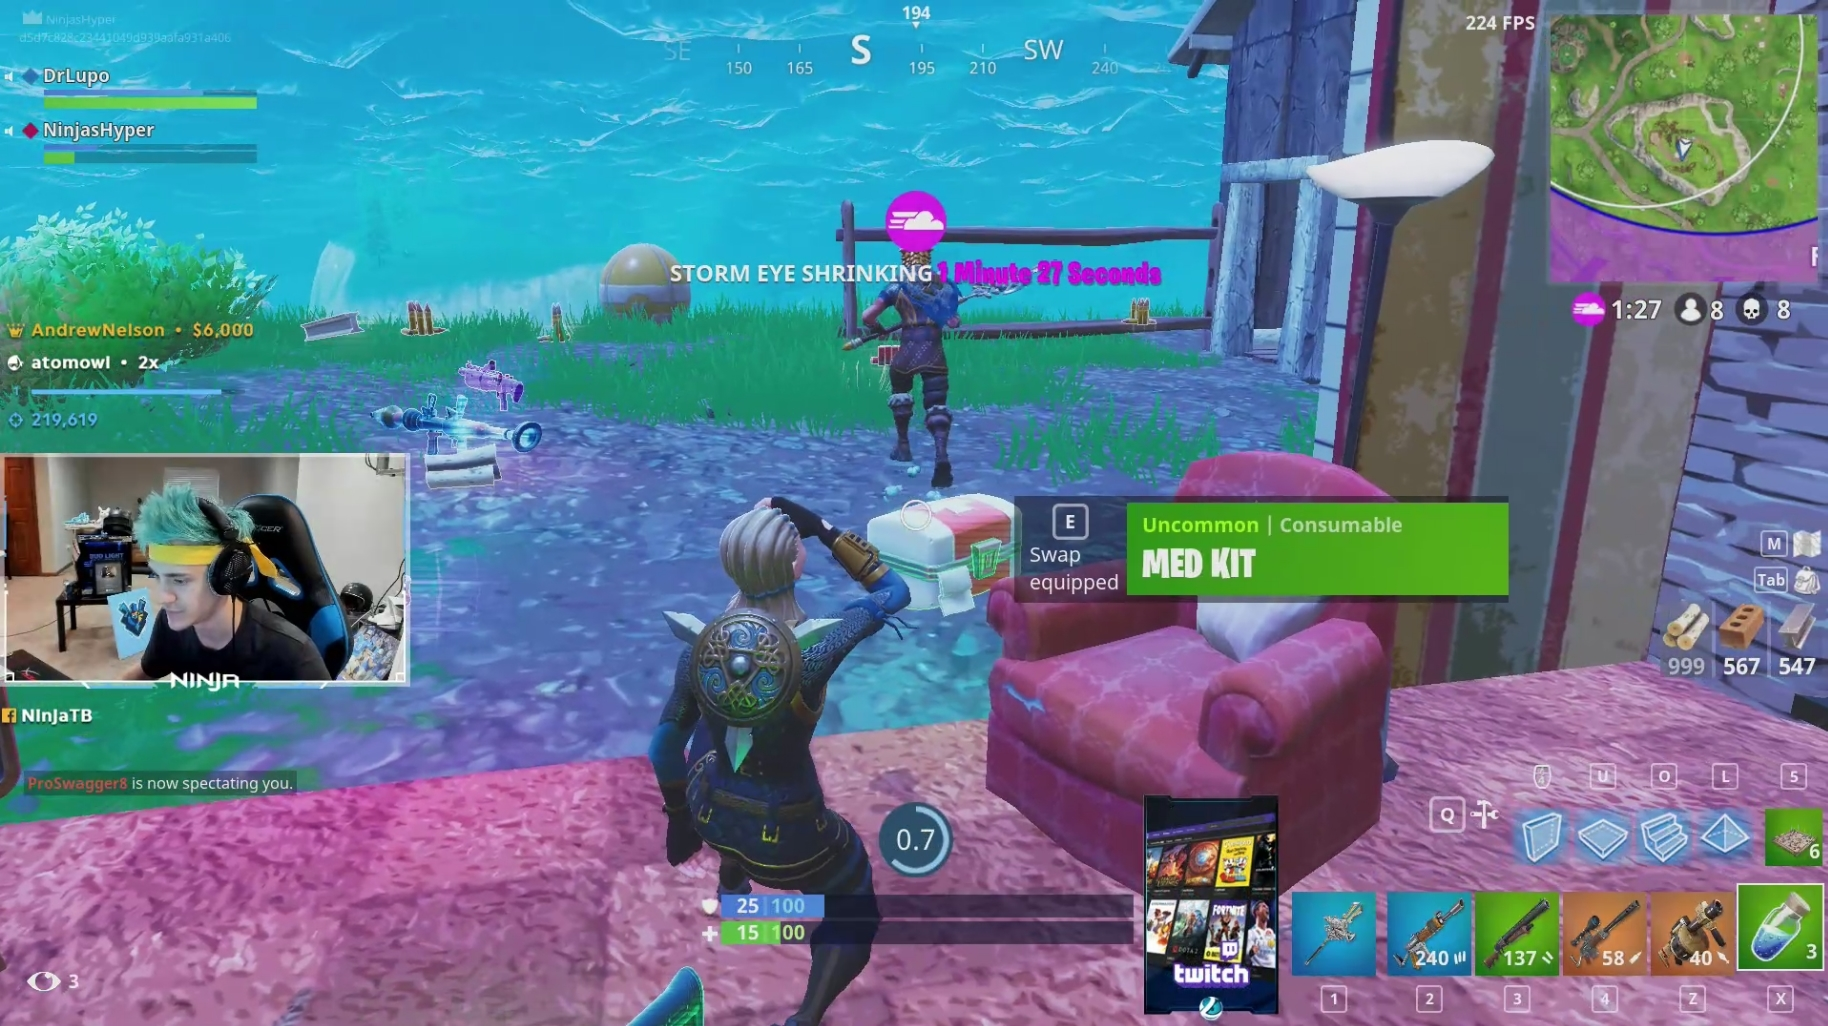 ninja and esports arena are partnering for a fortnite charity event in las vegas - ninja fortnite event